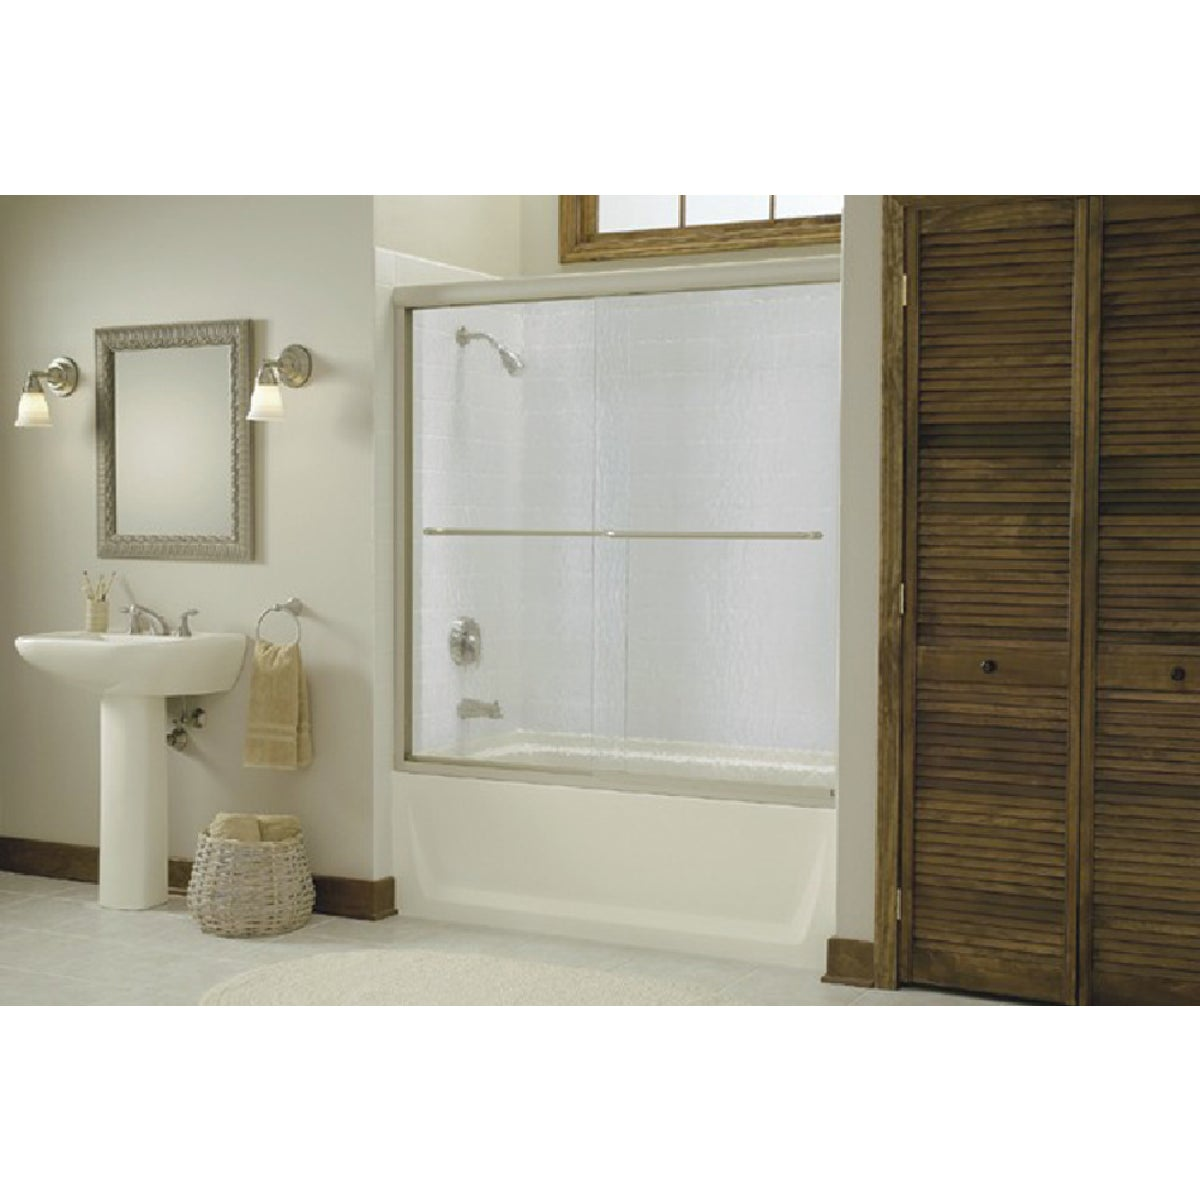 54-5/8-59-5/8 CLR TUB DR - 5425-59S-G05 by Sterling Doors